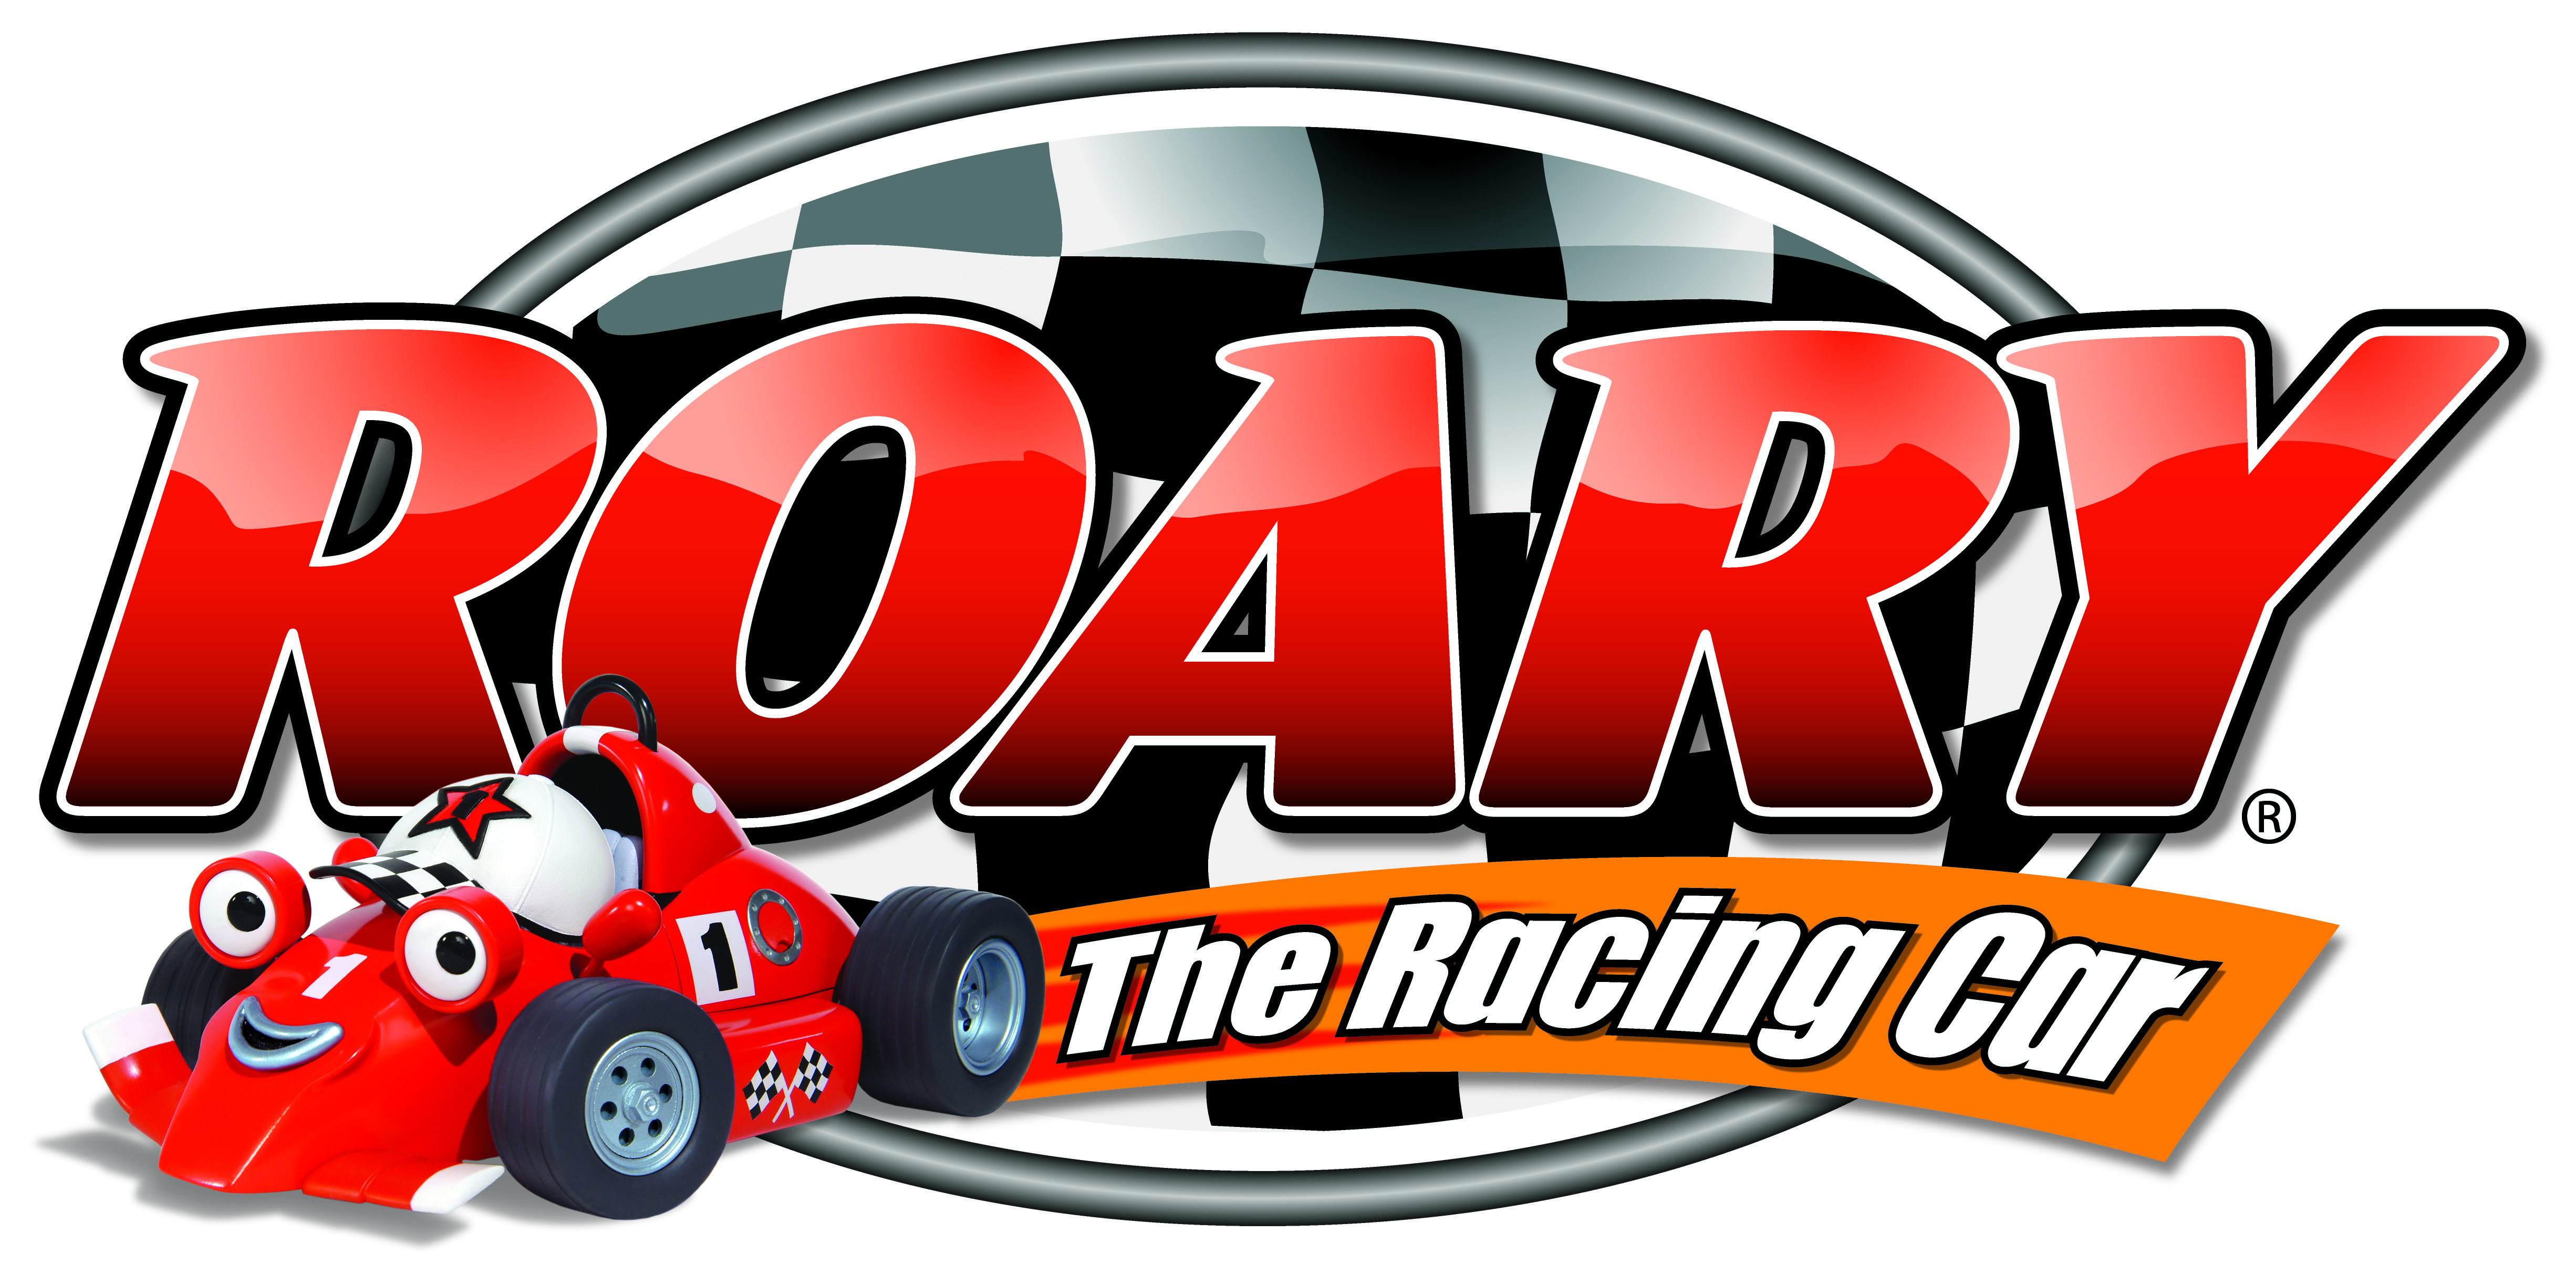 ROARY THE RACING CAR - (02) 2015-04-27